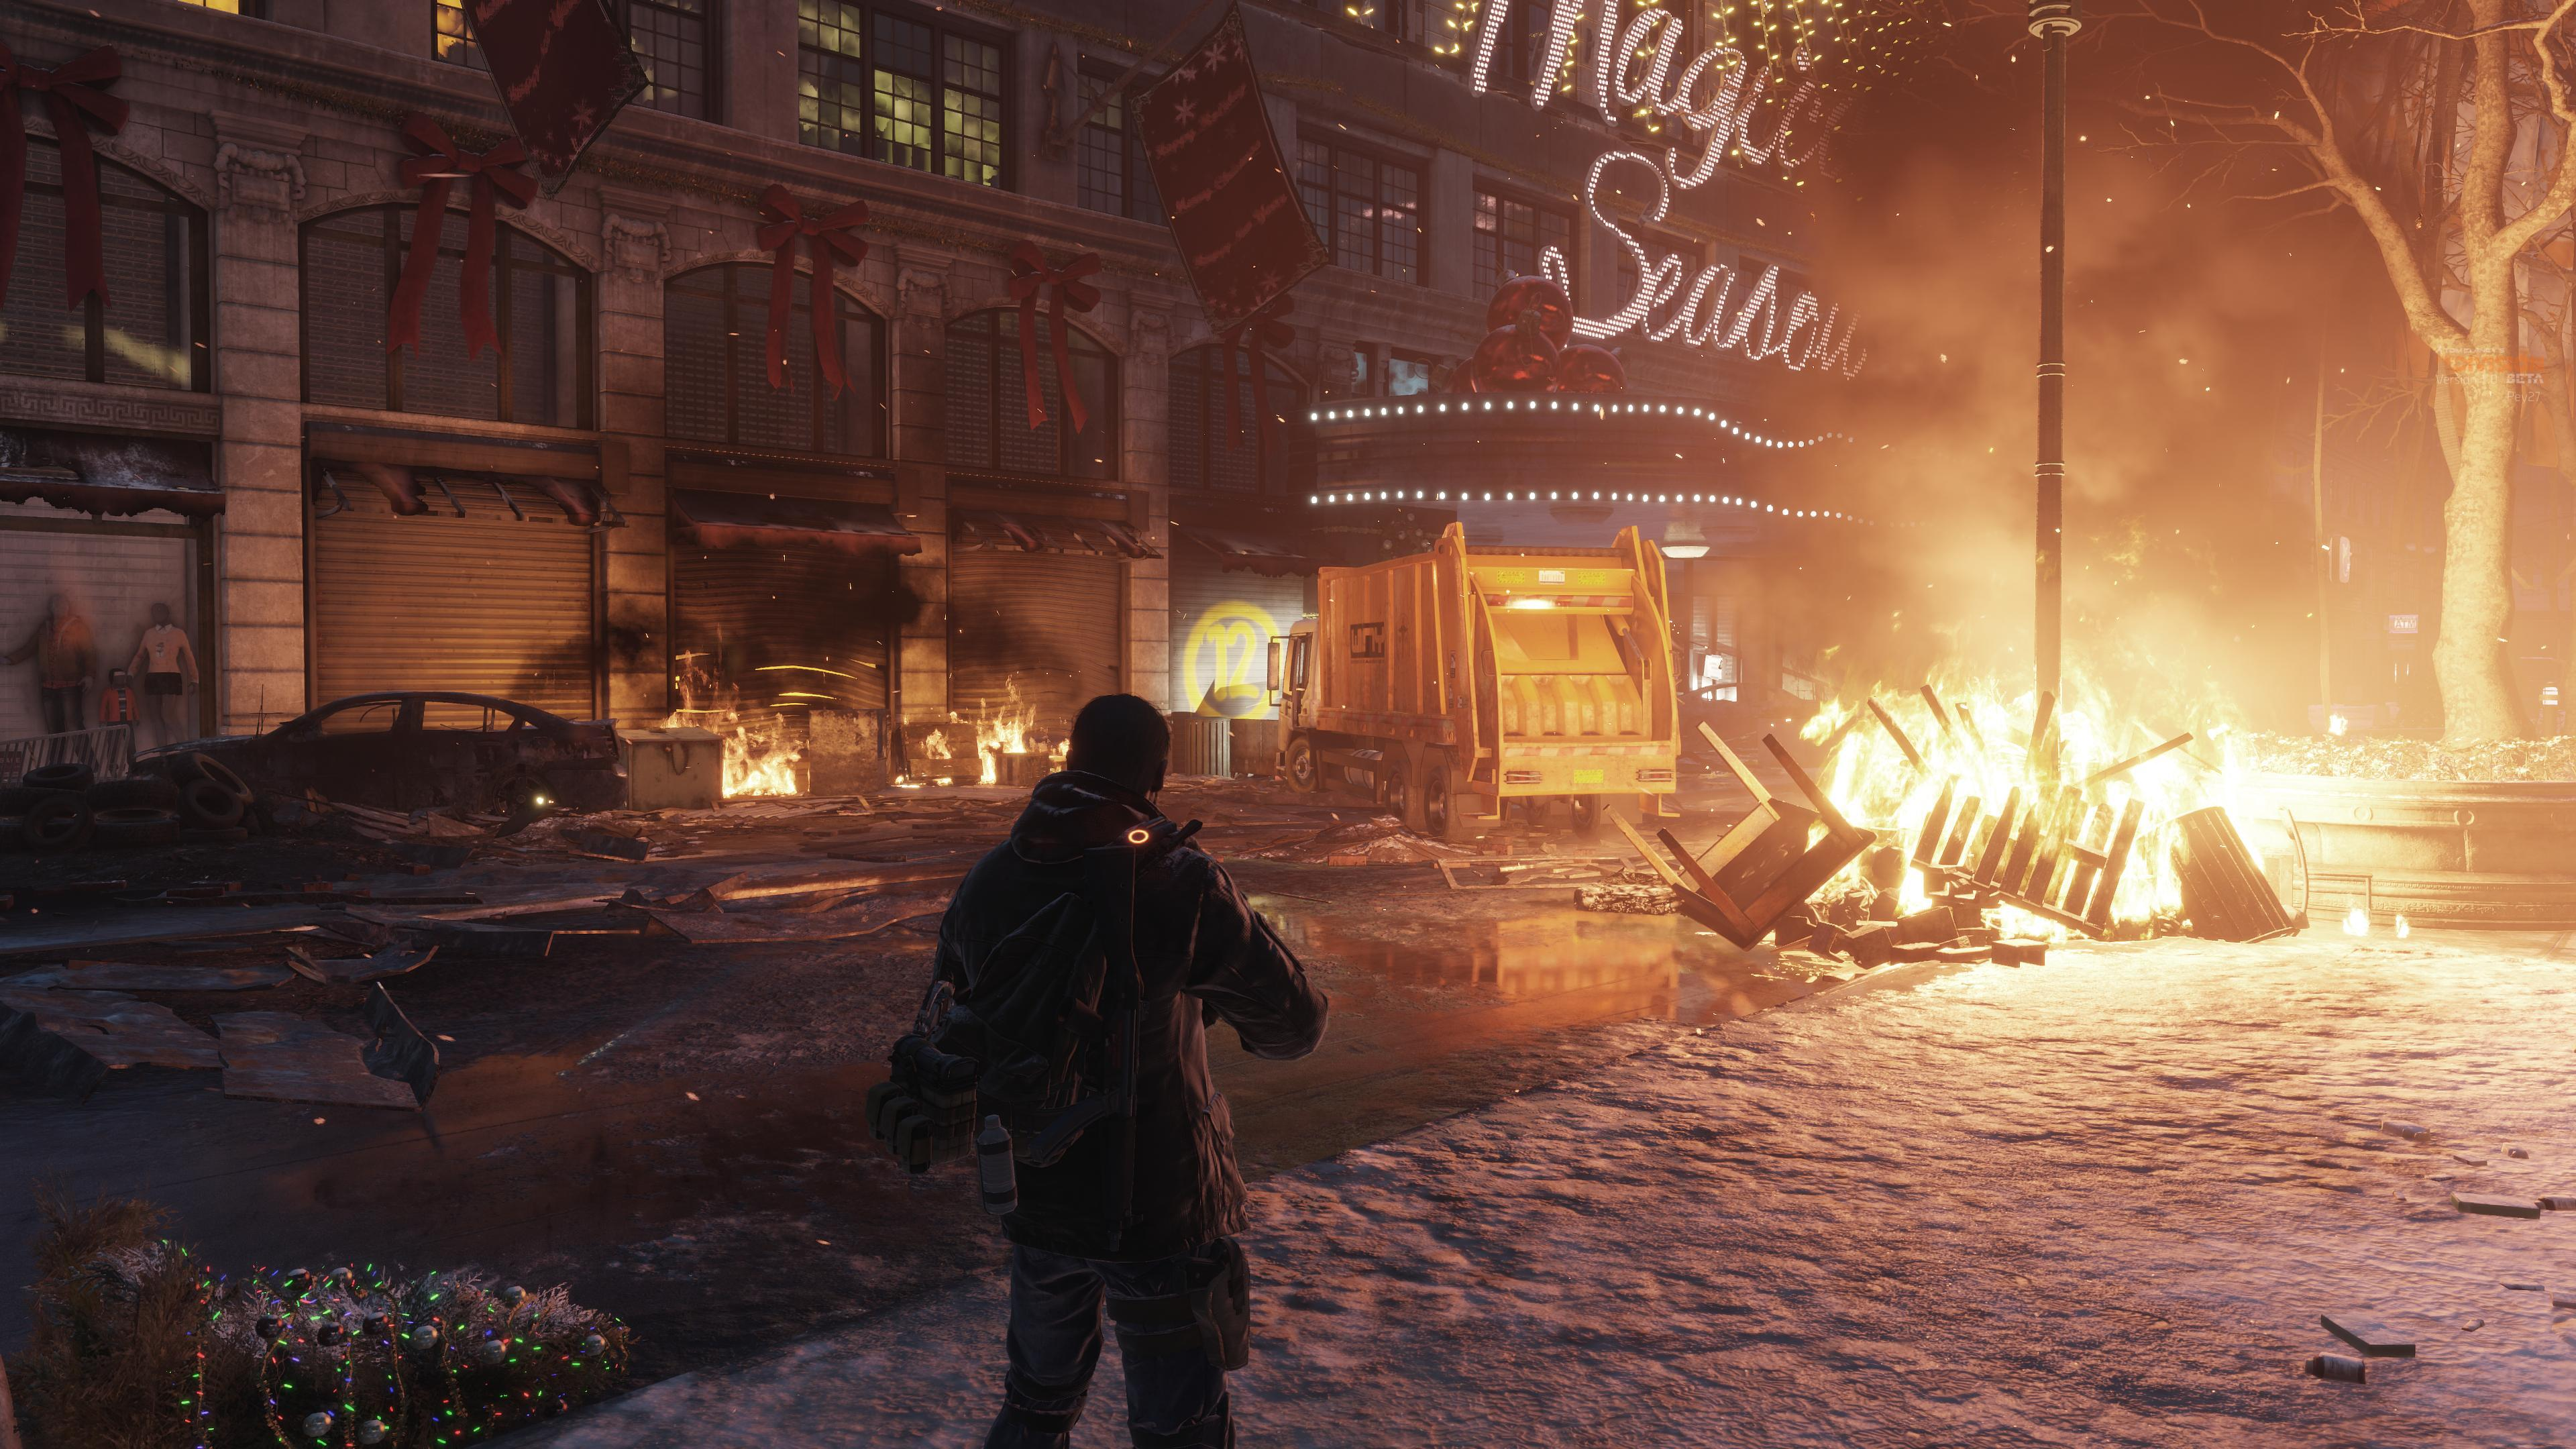 The Division Dev Has Plans To Have The Game's Open World Area Changed